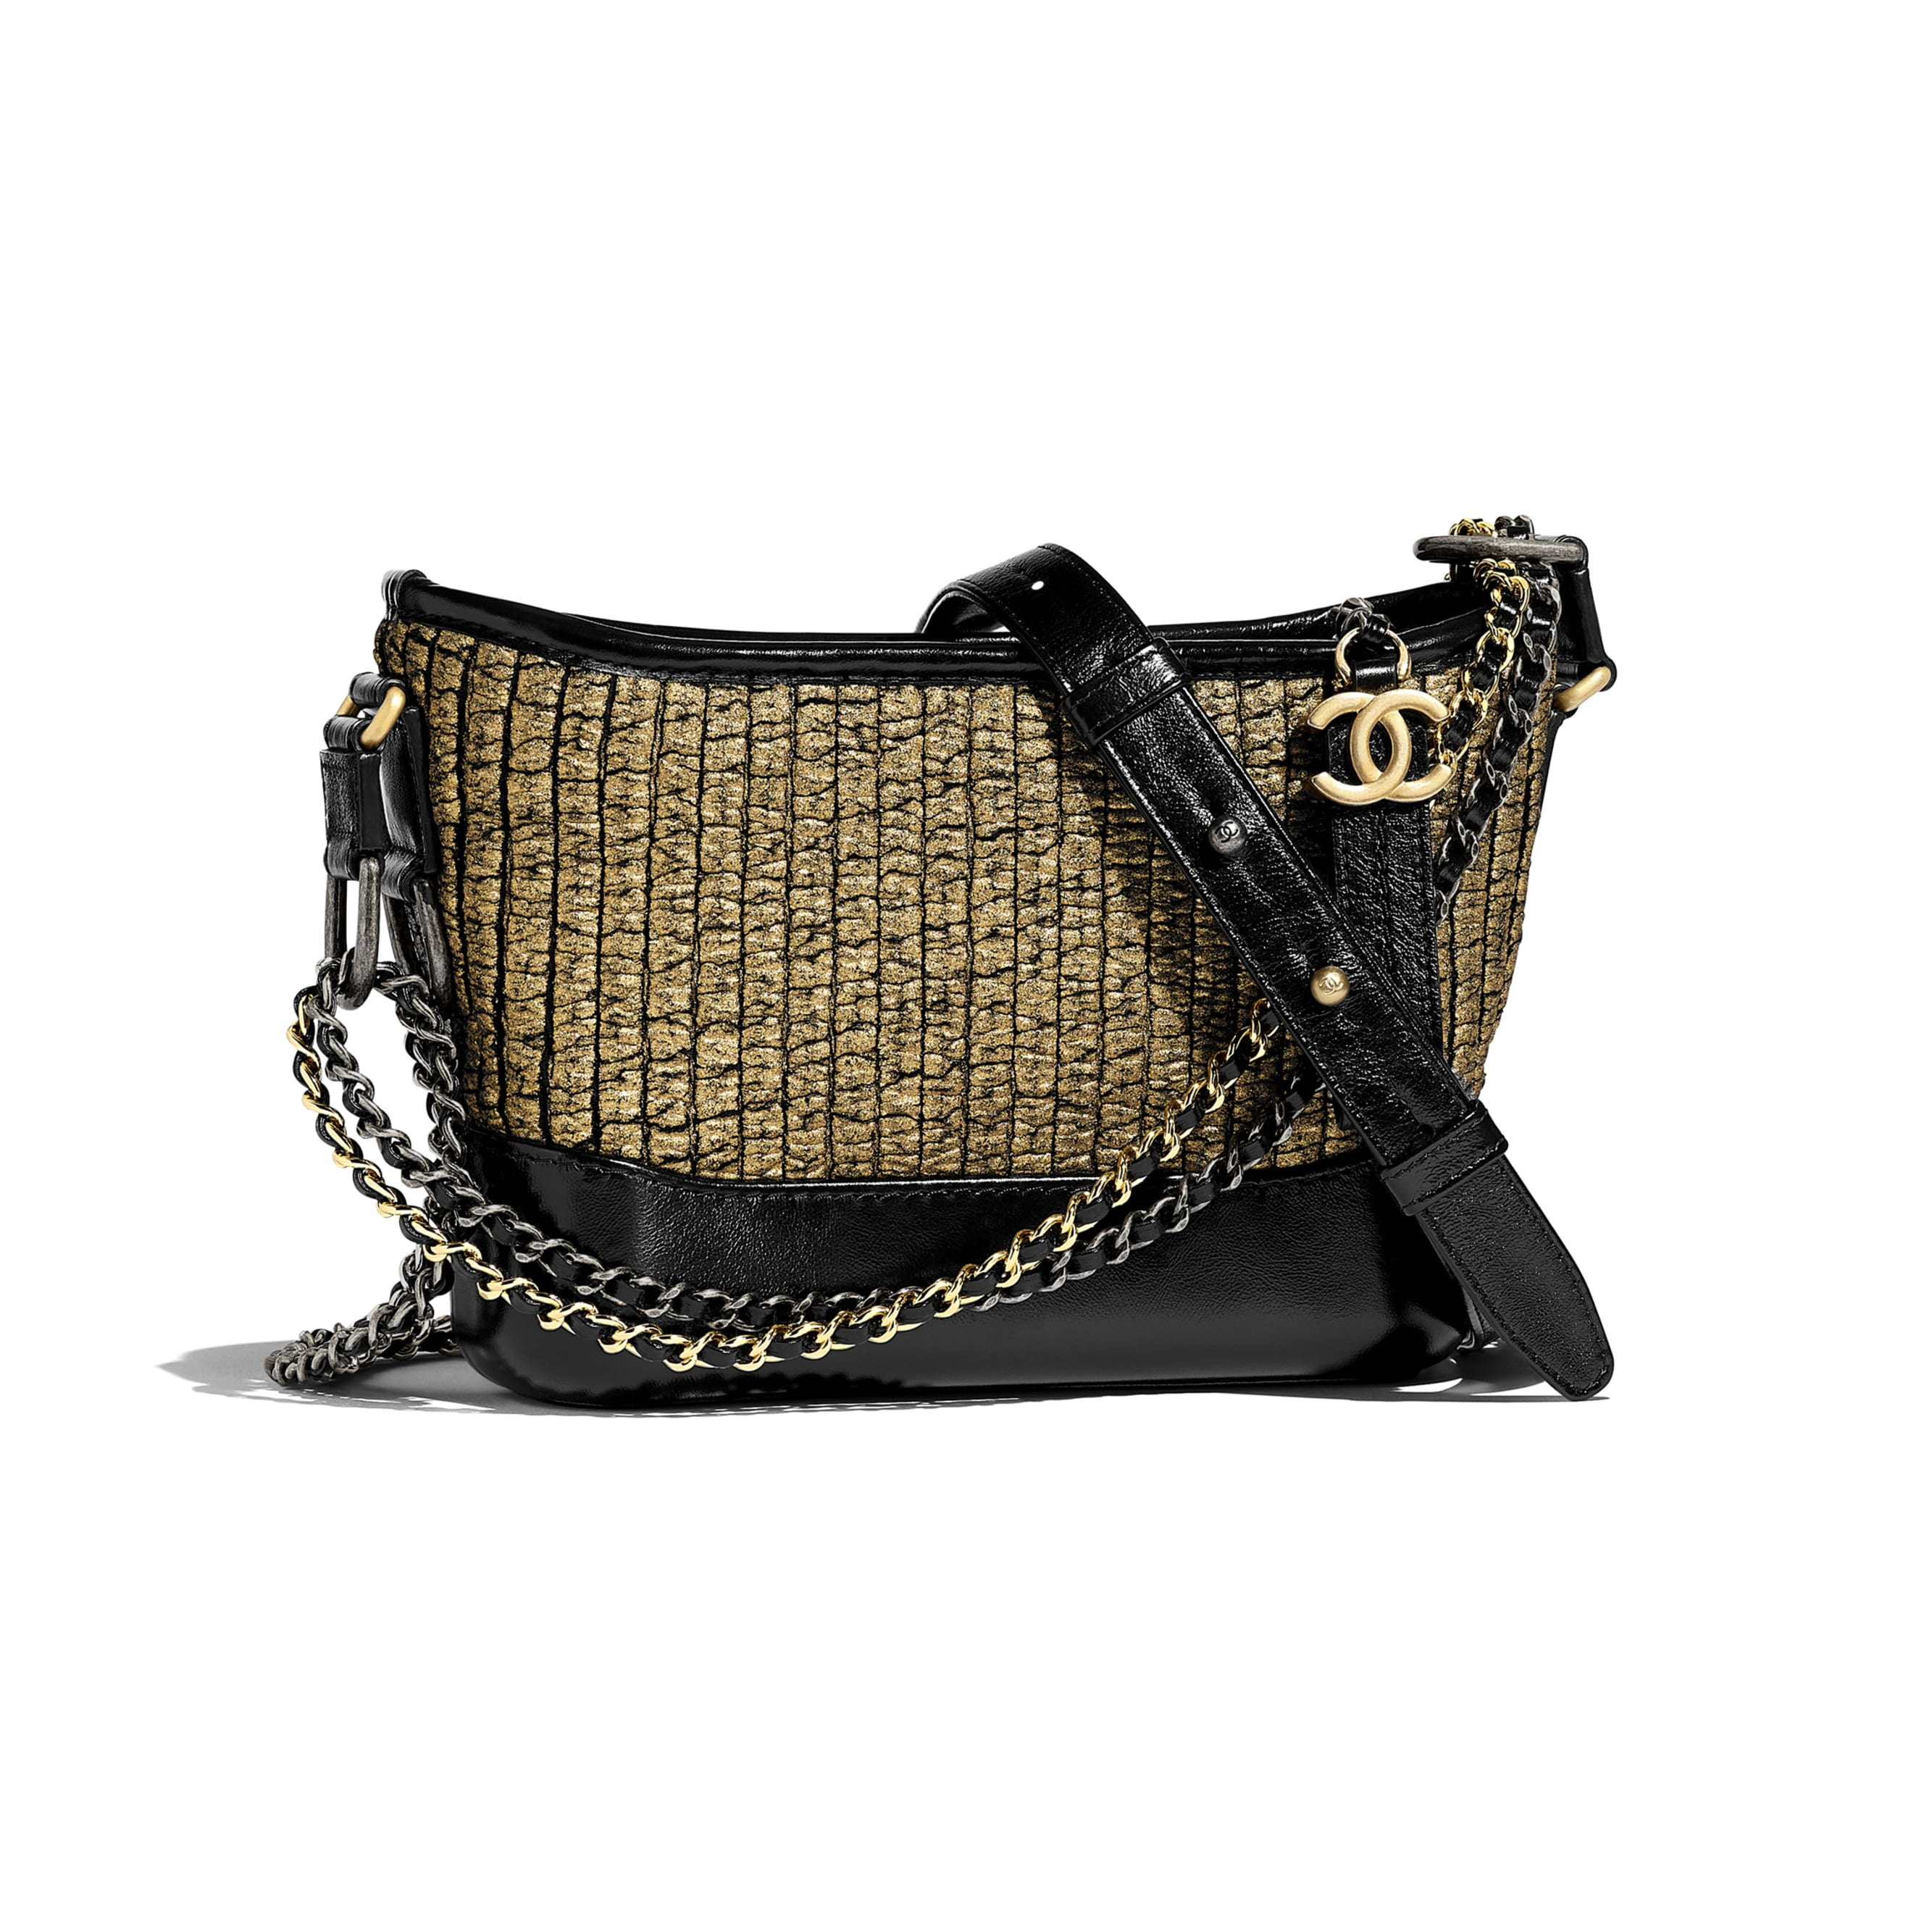 CHANEL'S GABRIELLE Small Hobo Bag - Gold & Black - Tweed, Calfskin, Gold-Tone & Silver-Tone Metal - CHANEL - Default view - see standard sized version